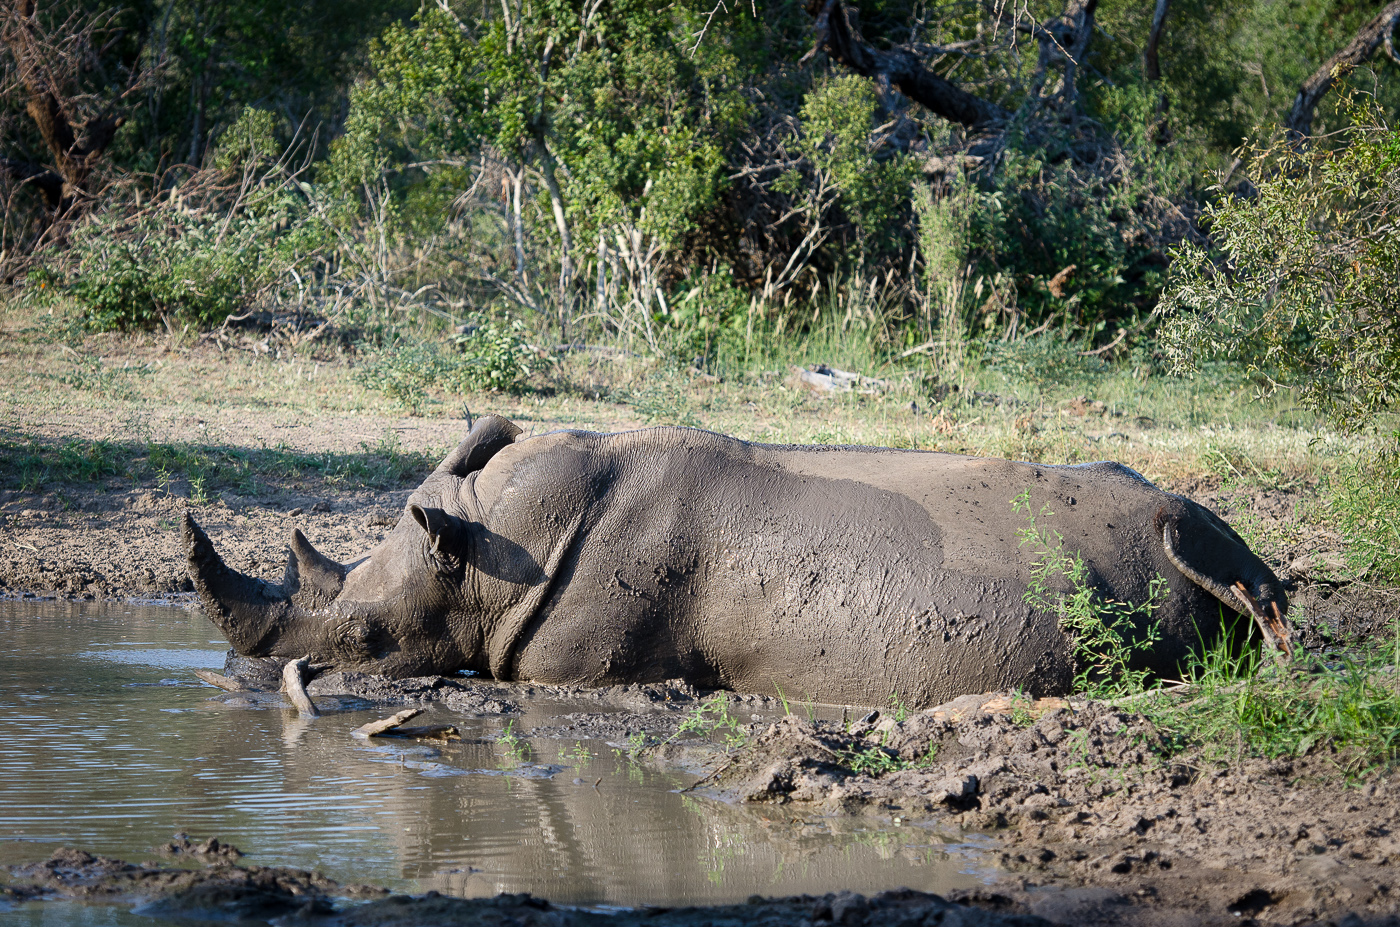 Rhino mud bath 1. KP